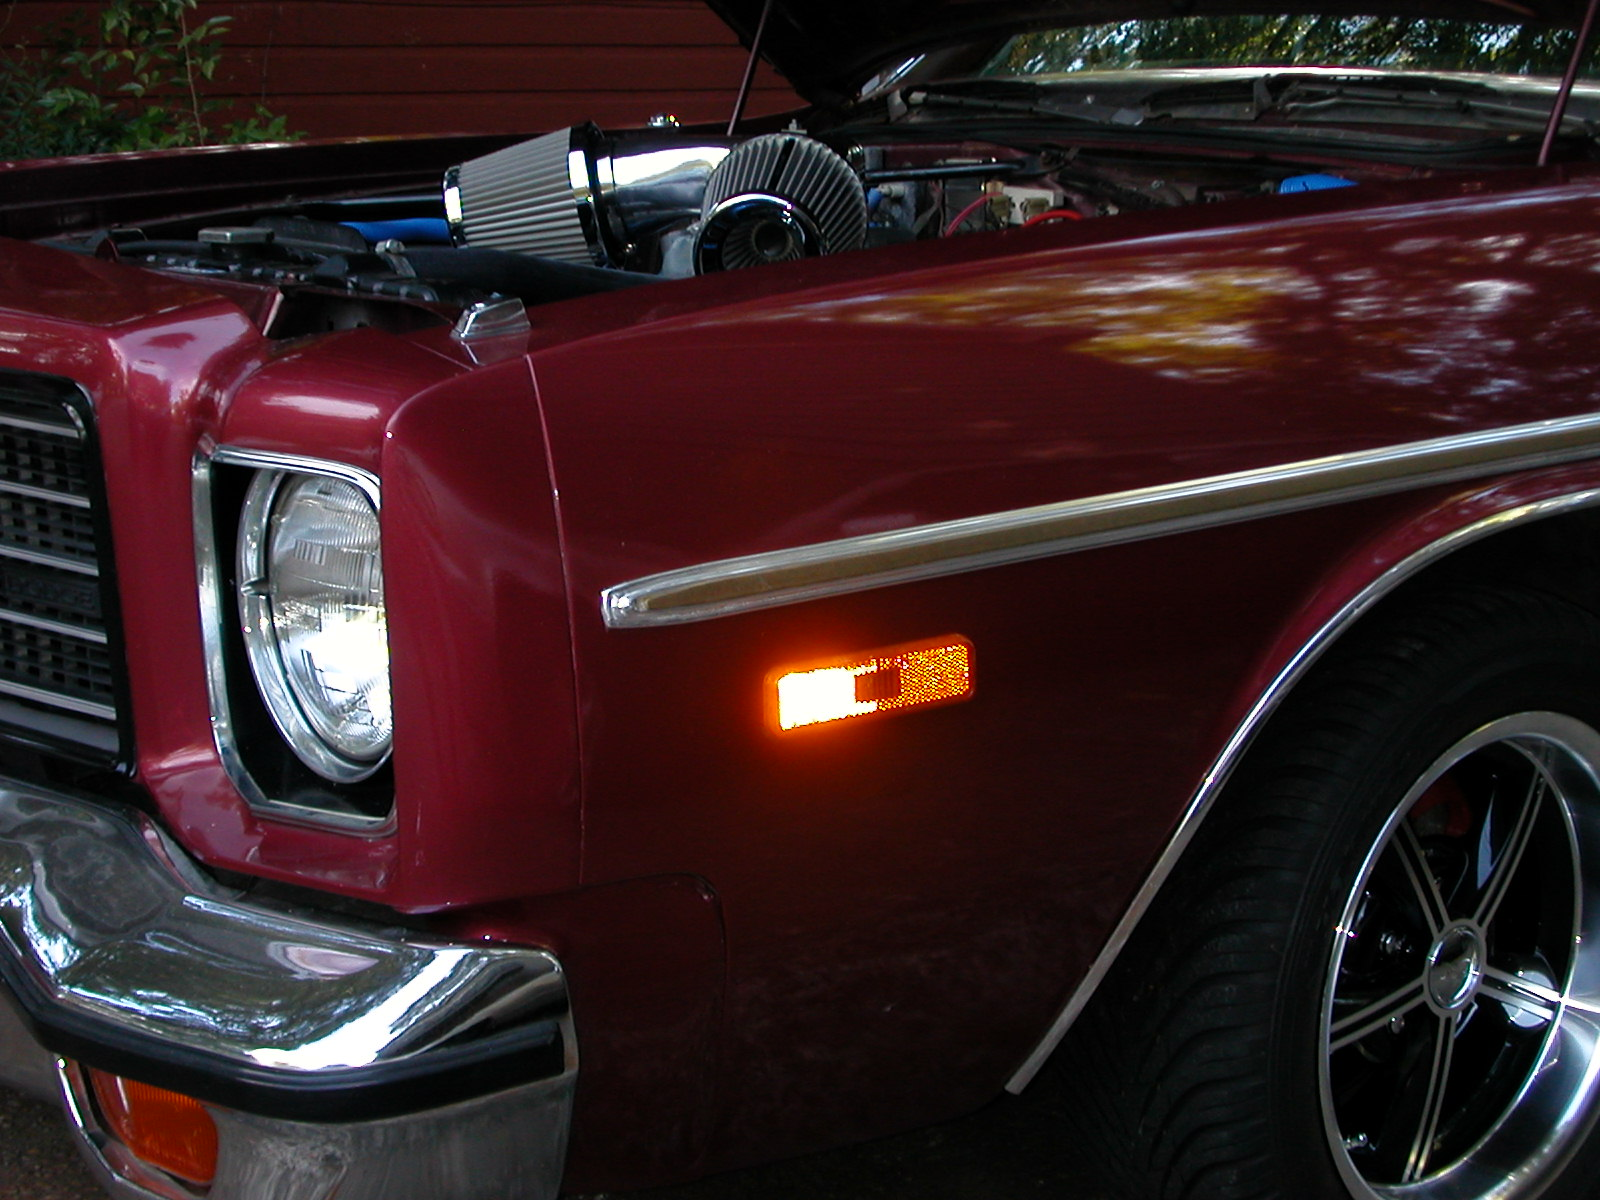 1976 Dodge Coronet picture, exterior, engine